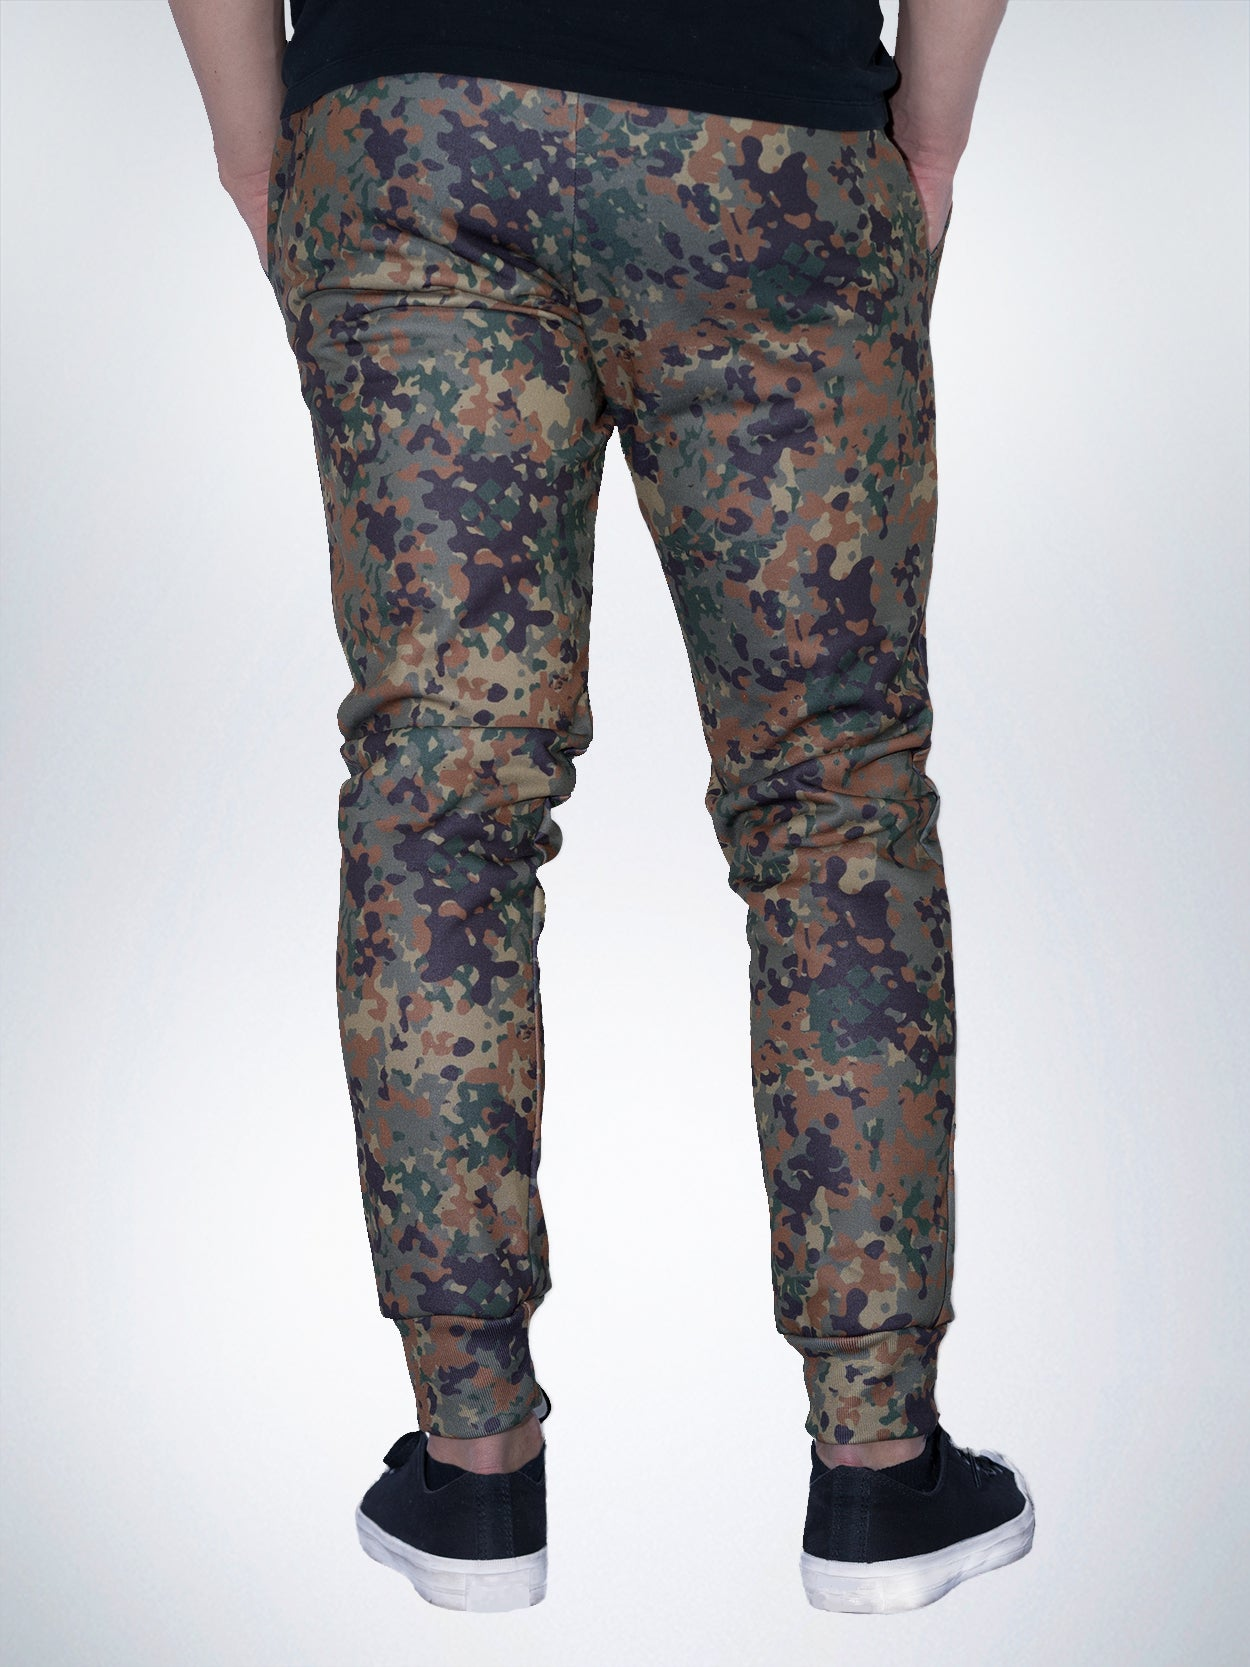 59e5ea4dc31af ... Hunter Xclusive mens jogger pant sweatpant Camo military jager camouflage  green